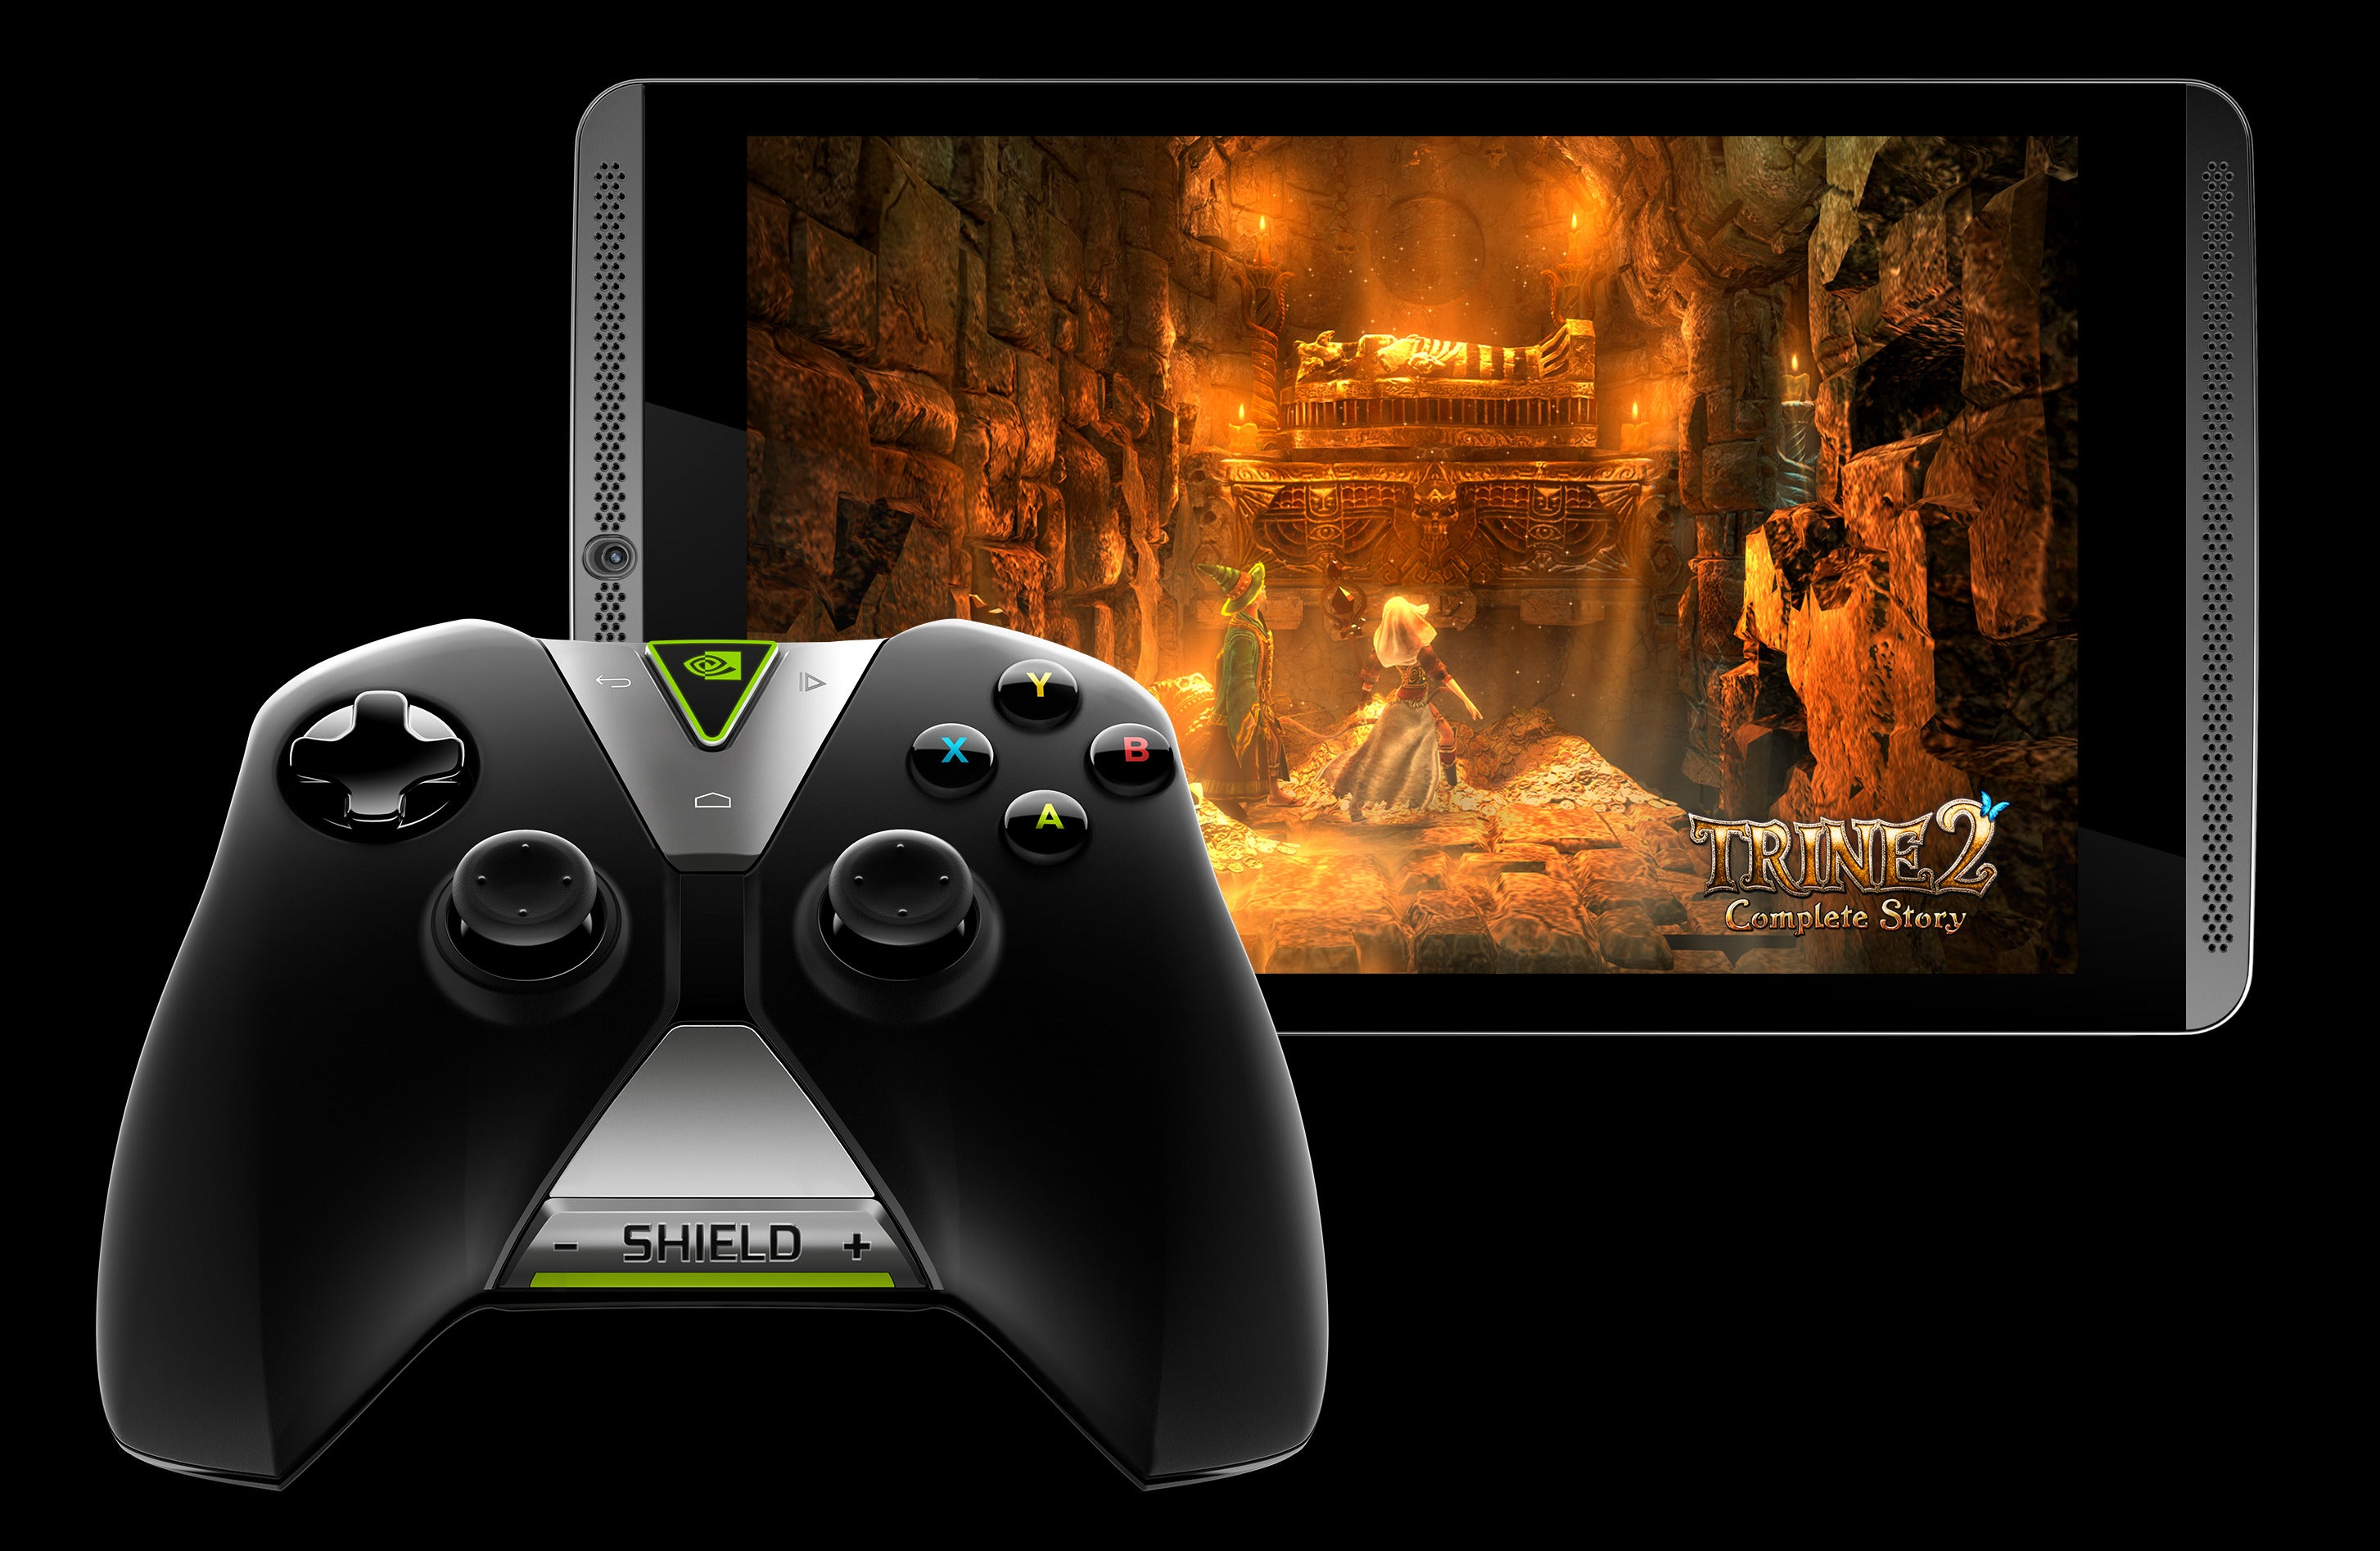 Hands On With Nvidias Shield Tablet A Slick Experience The Joystick It Gaming For Smartphone Pad Tab Small And Big Screen Pcworld